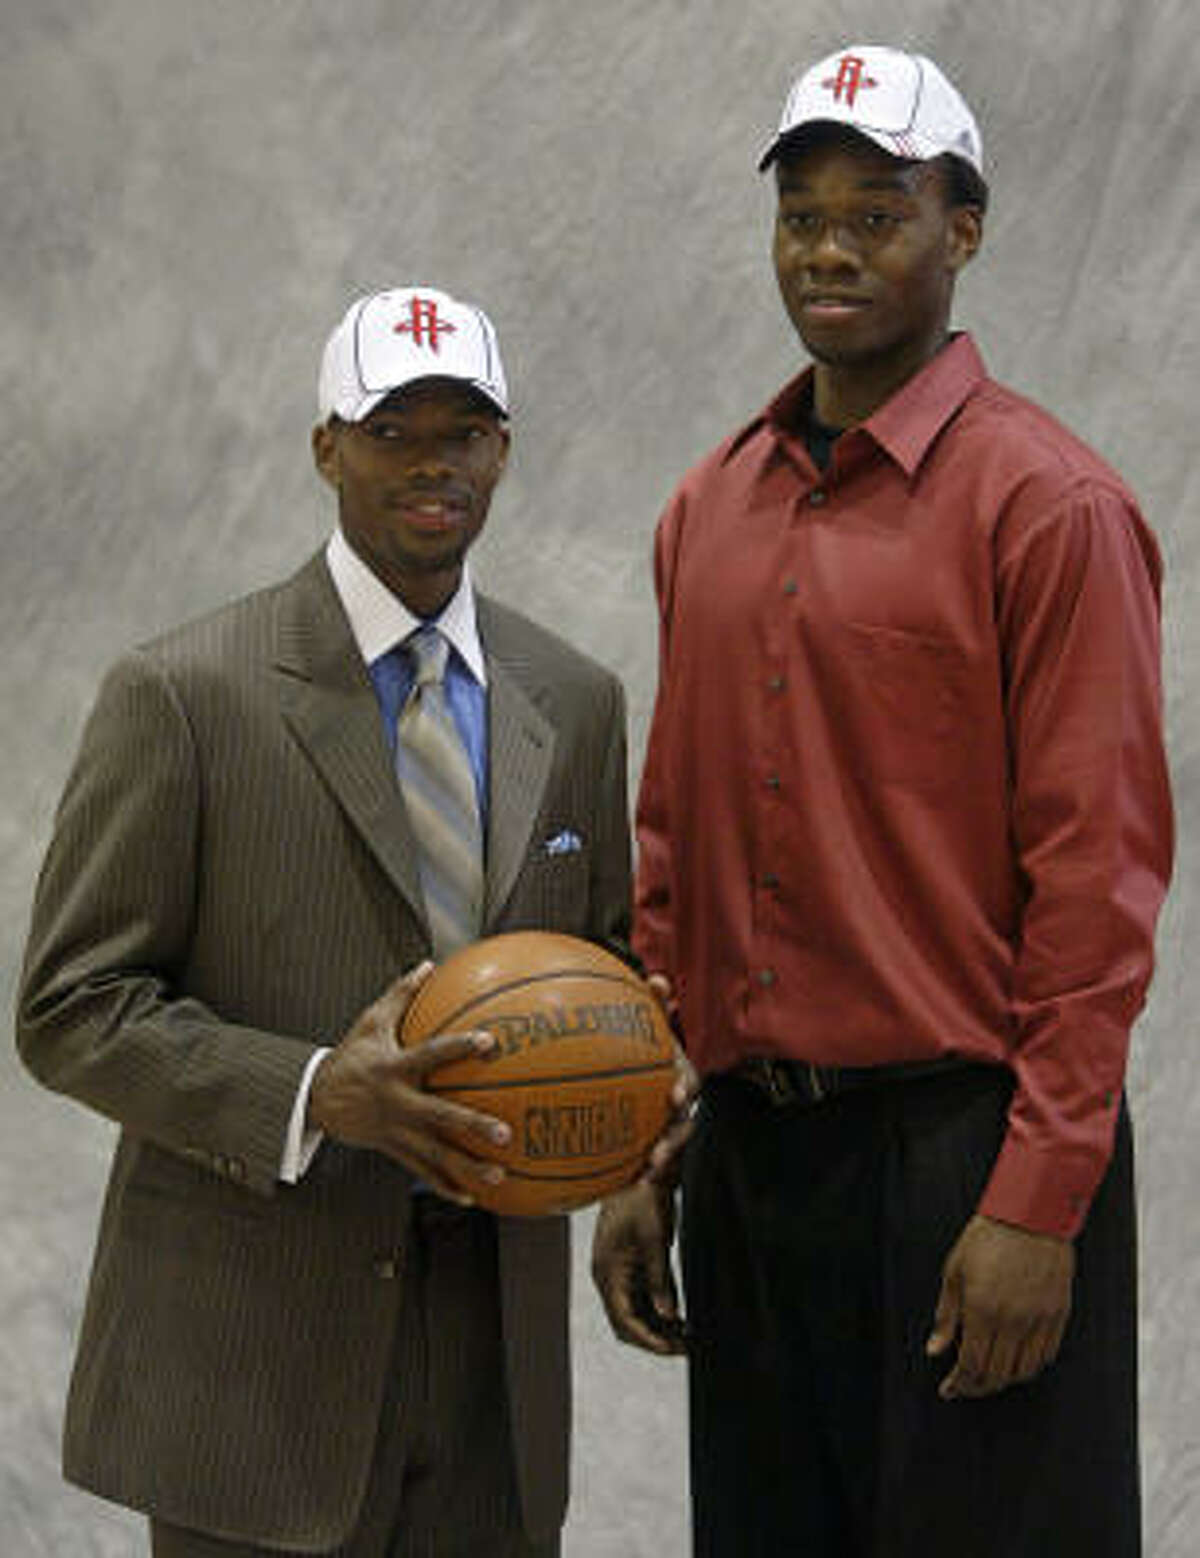 With the 26th pick of the 2007 NBA Draft, the Houston Rockets selected guard Aaron Brooks, left, from the University of Oregon. The Rockets selected Carl Landry, right, in the second round.